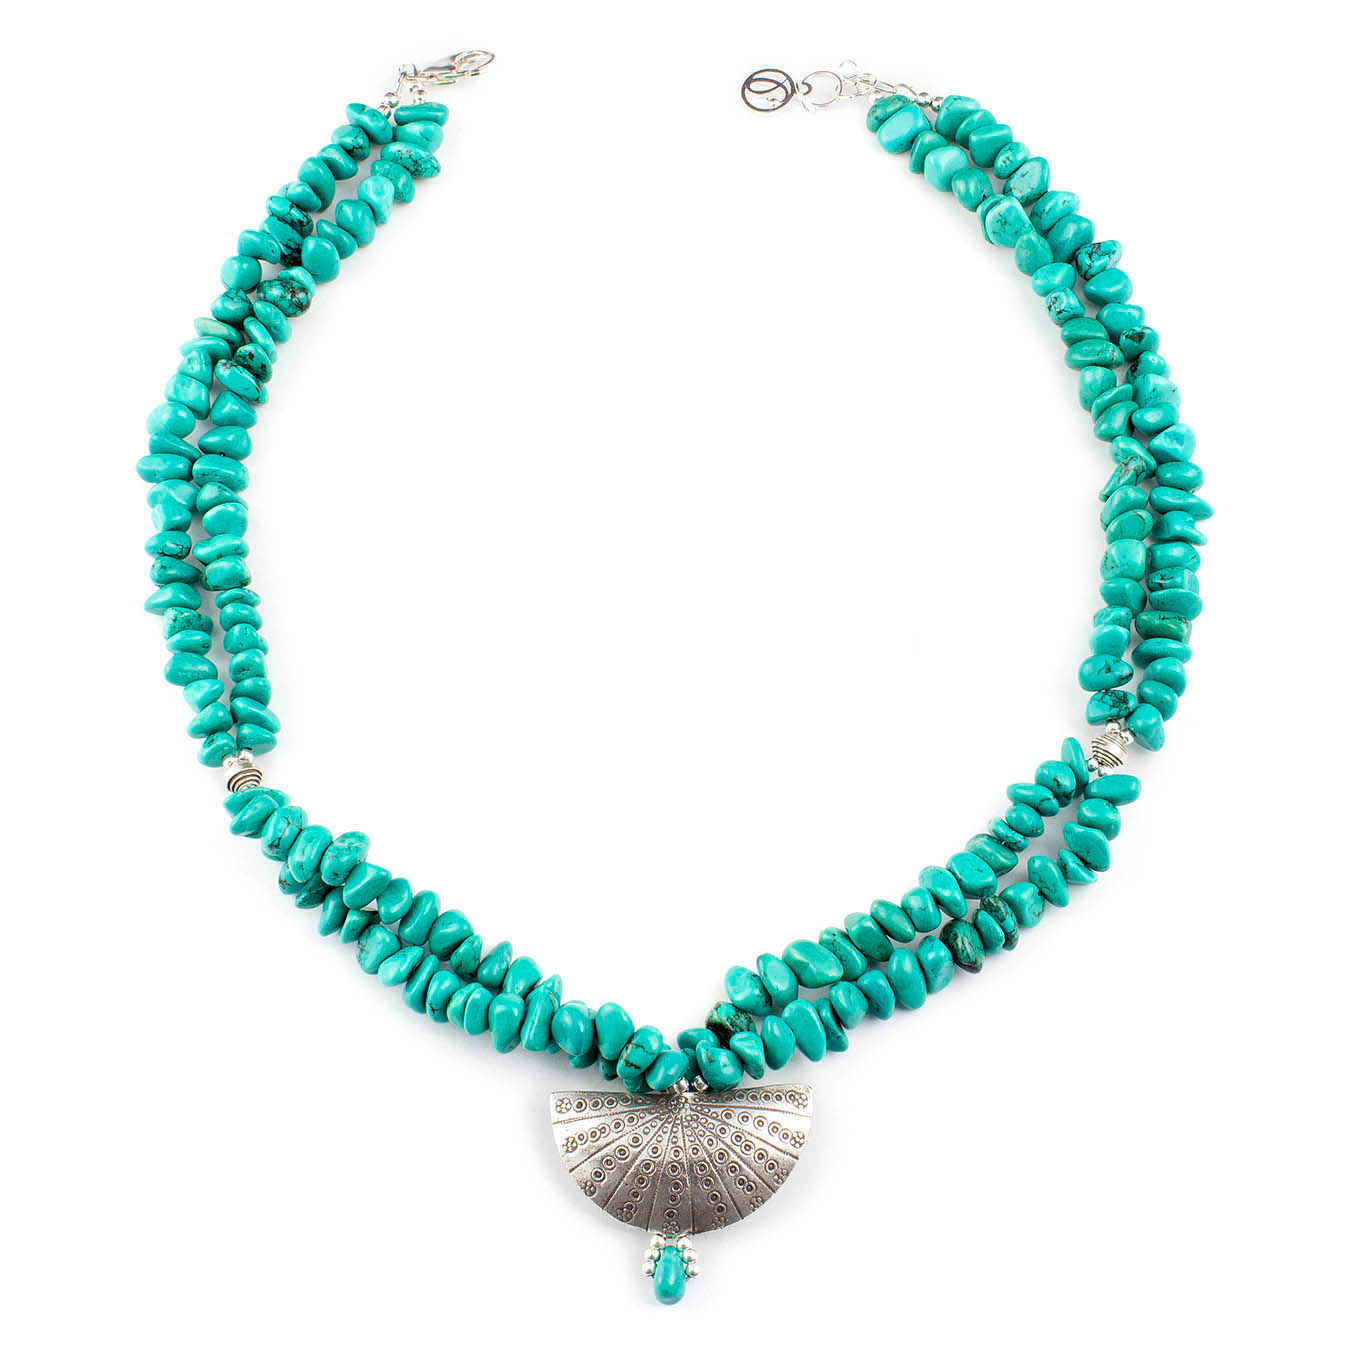 Beaded December birthstone jewelry with turquoise and Thai pendant